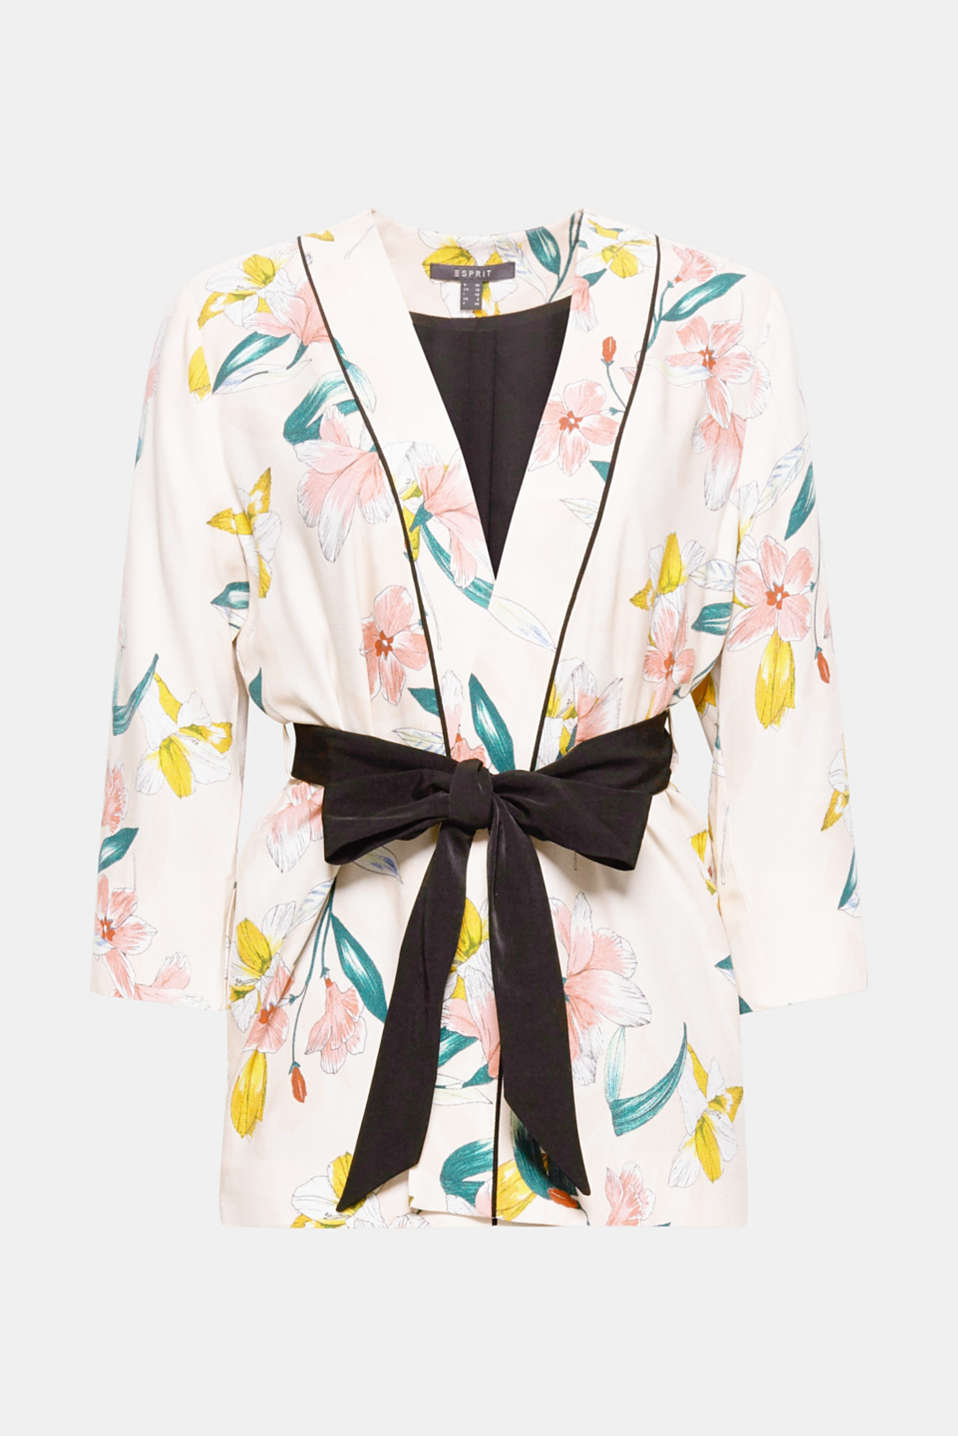 Feminine fashion piece: Colourful flowers made of delicate fabric make this stylish kimono with a tie-around belt and three-quarter sleeves an eye-catching piece!